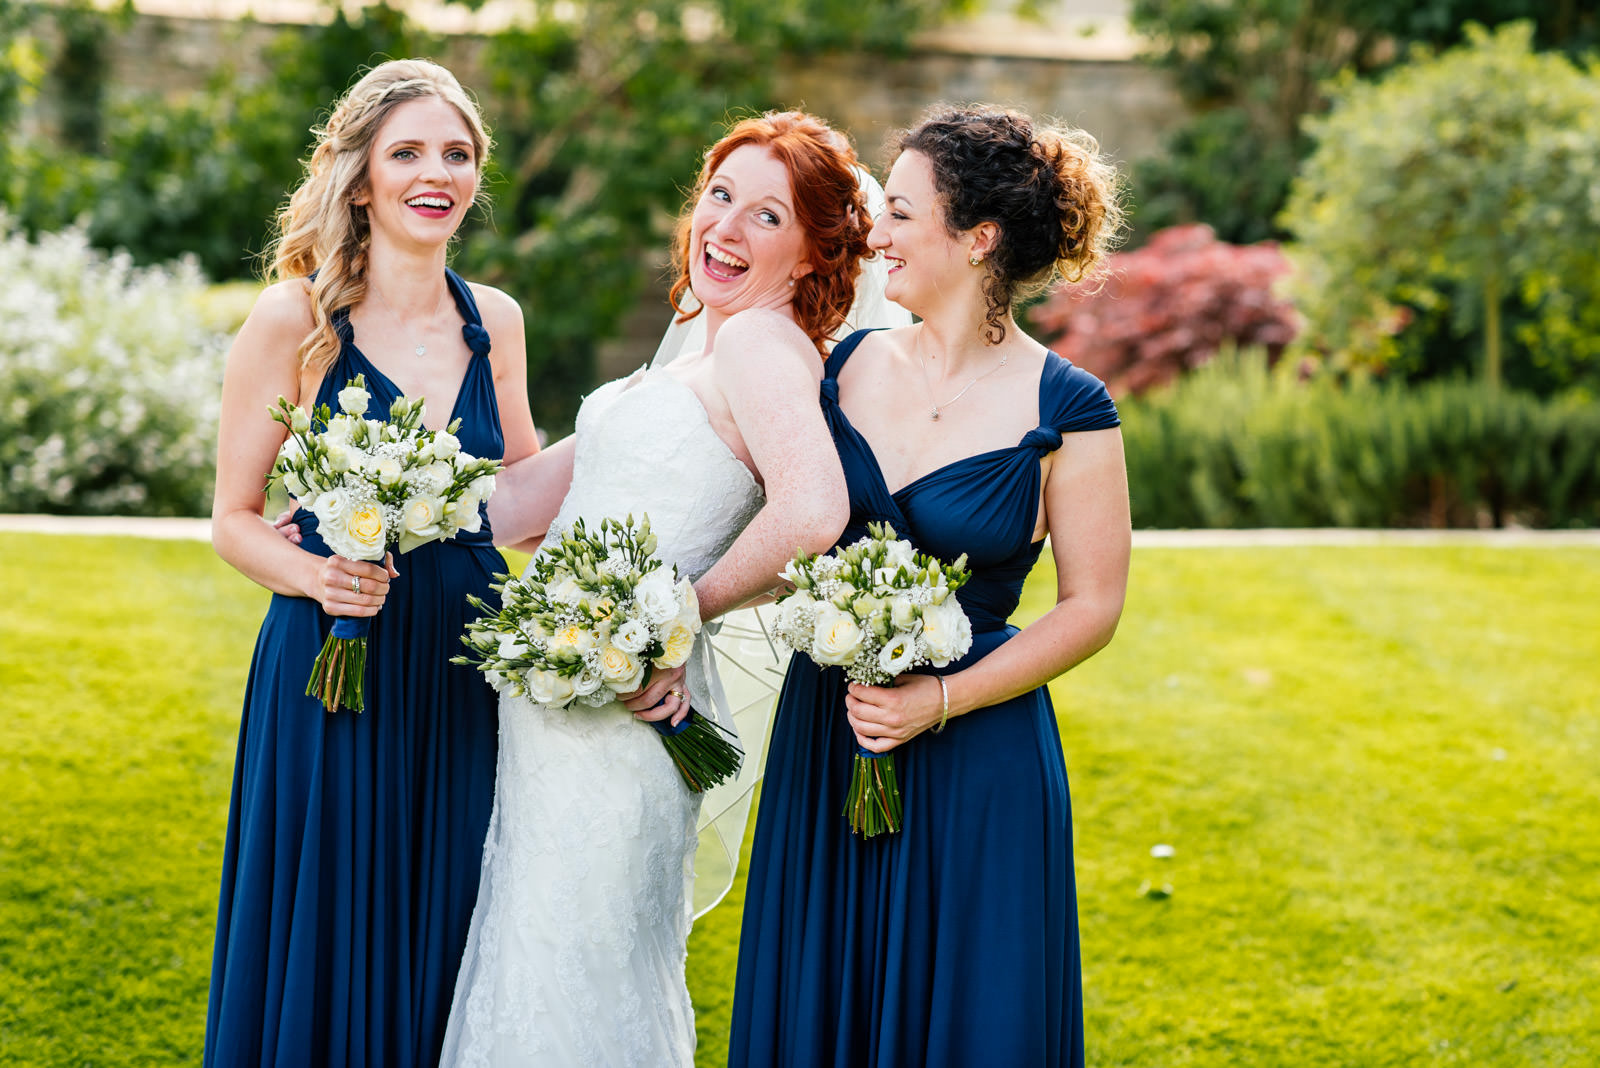 Bride and bridesmaids fun group photo